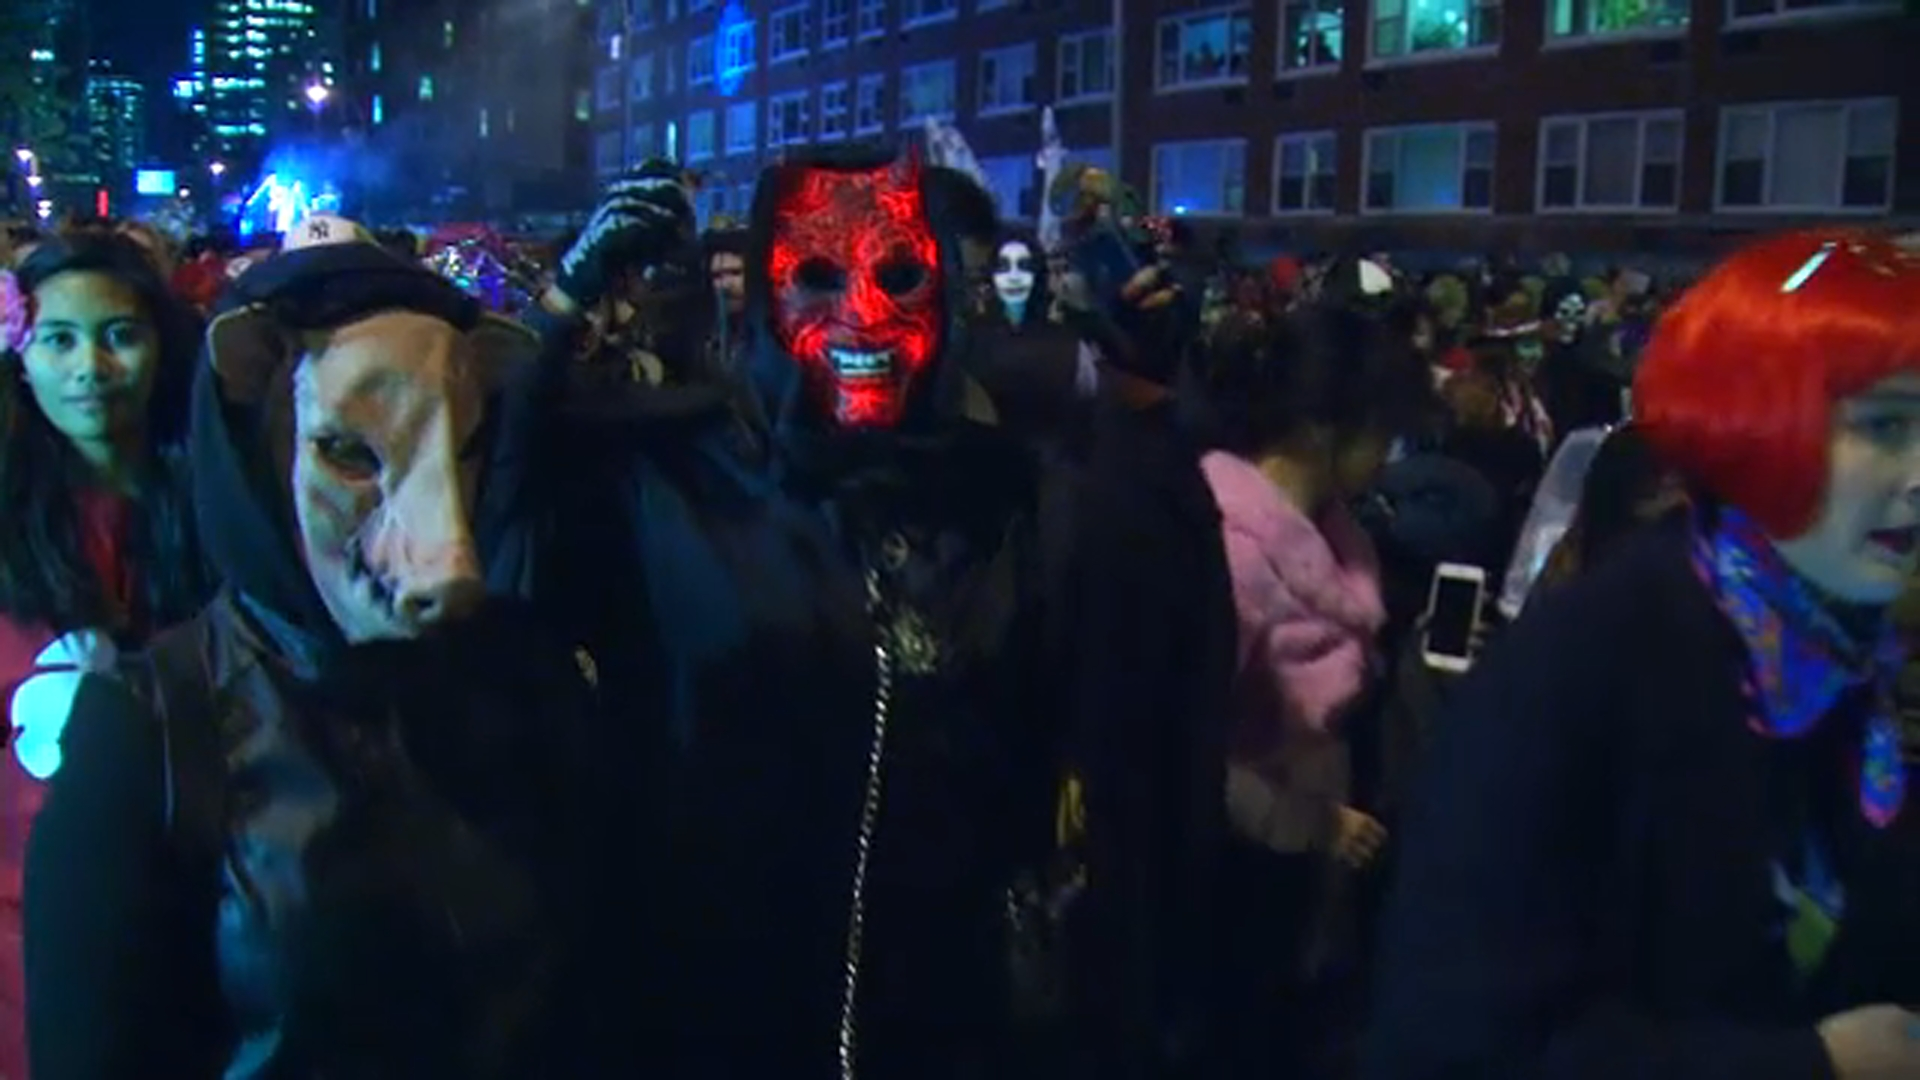 Village Halloween Parade Canceled Organizers Promise Trick That Will Be A Treat Abc7 New York